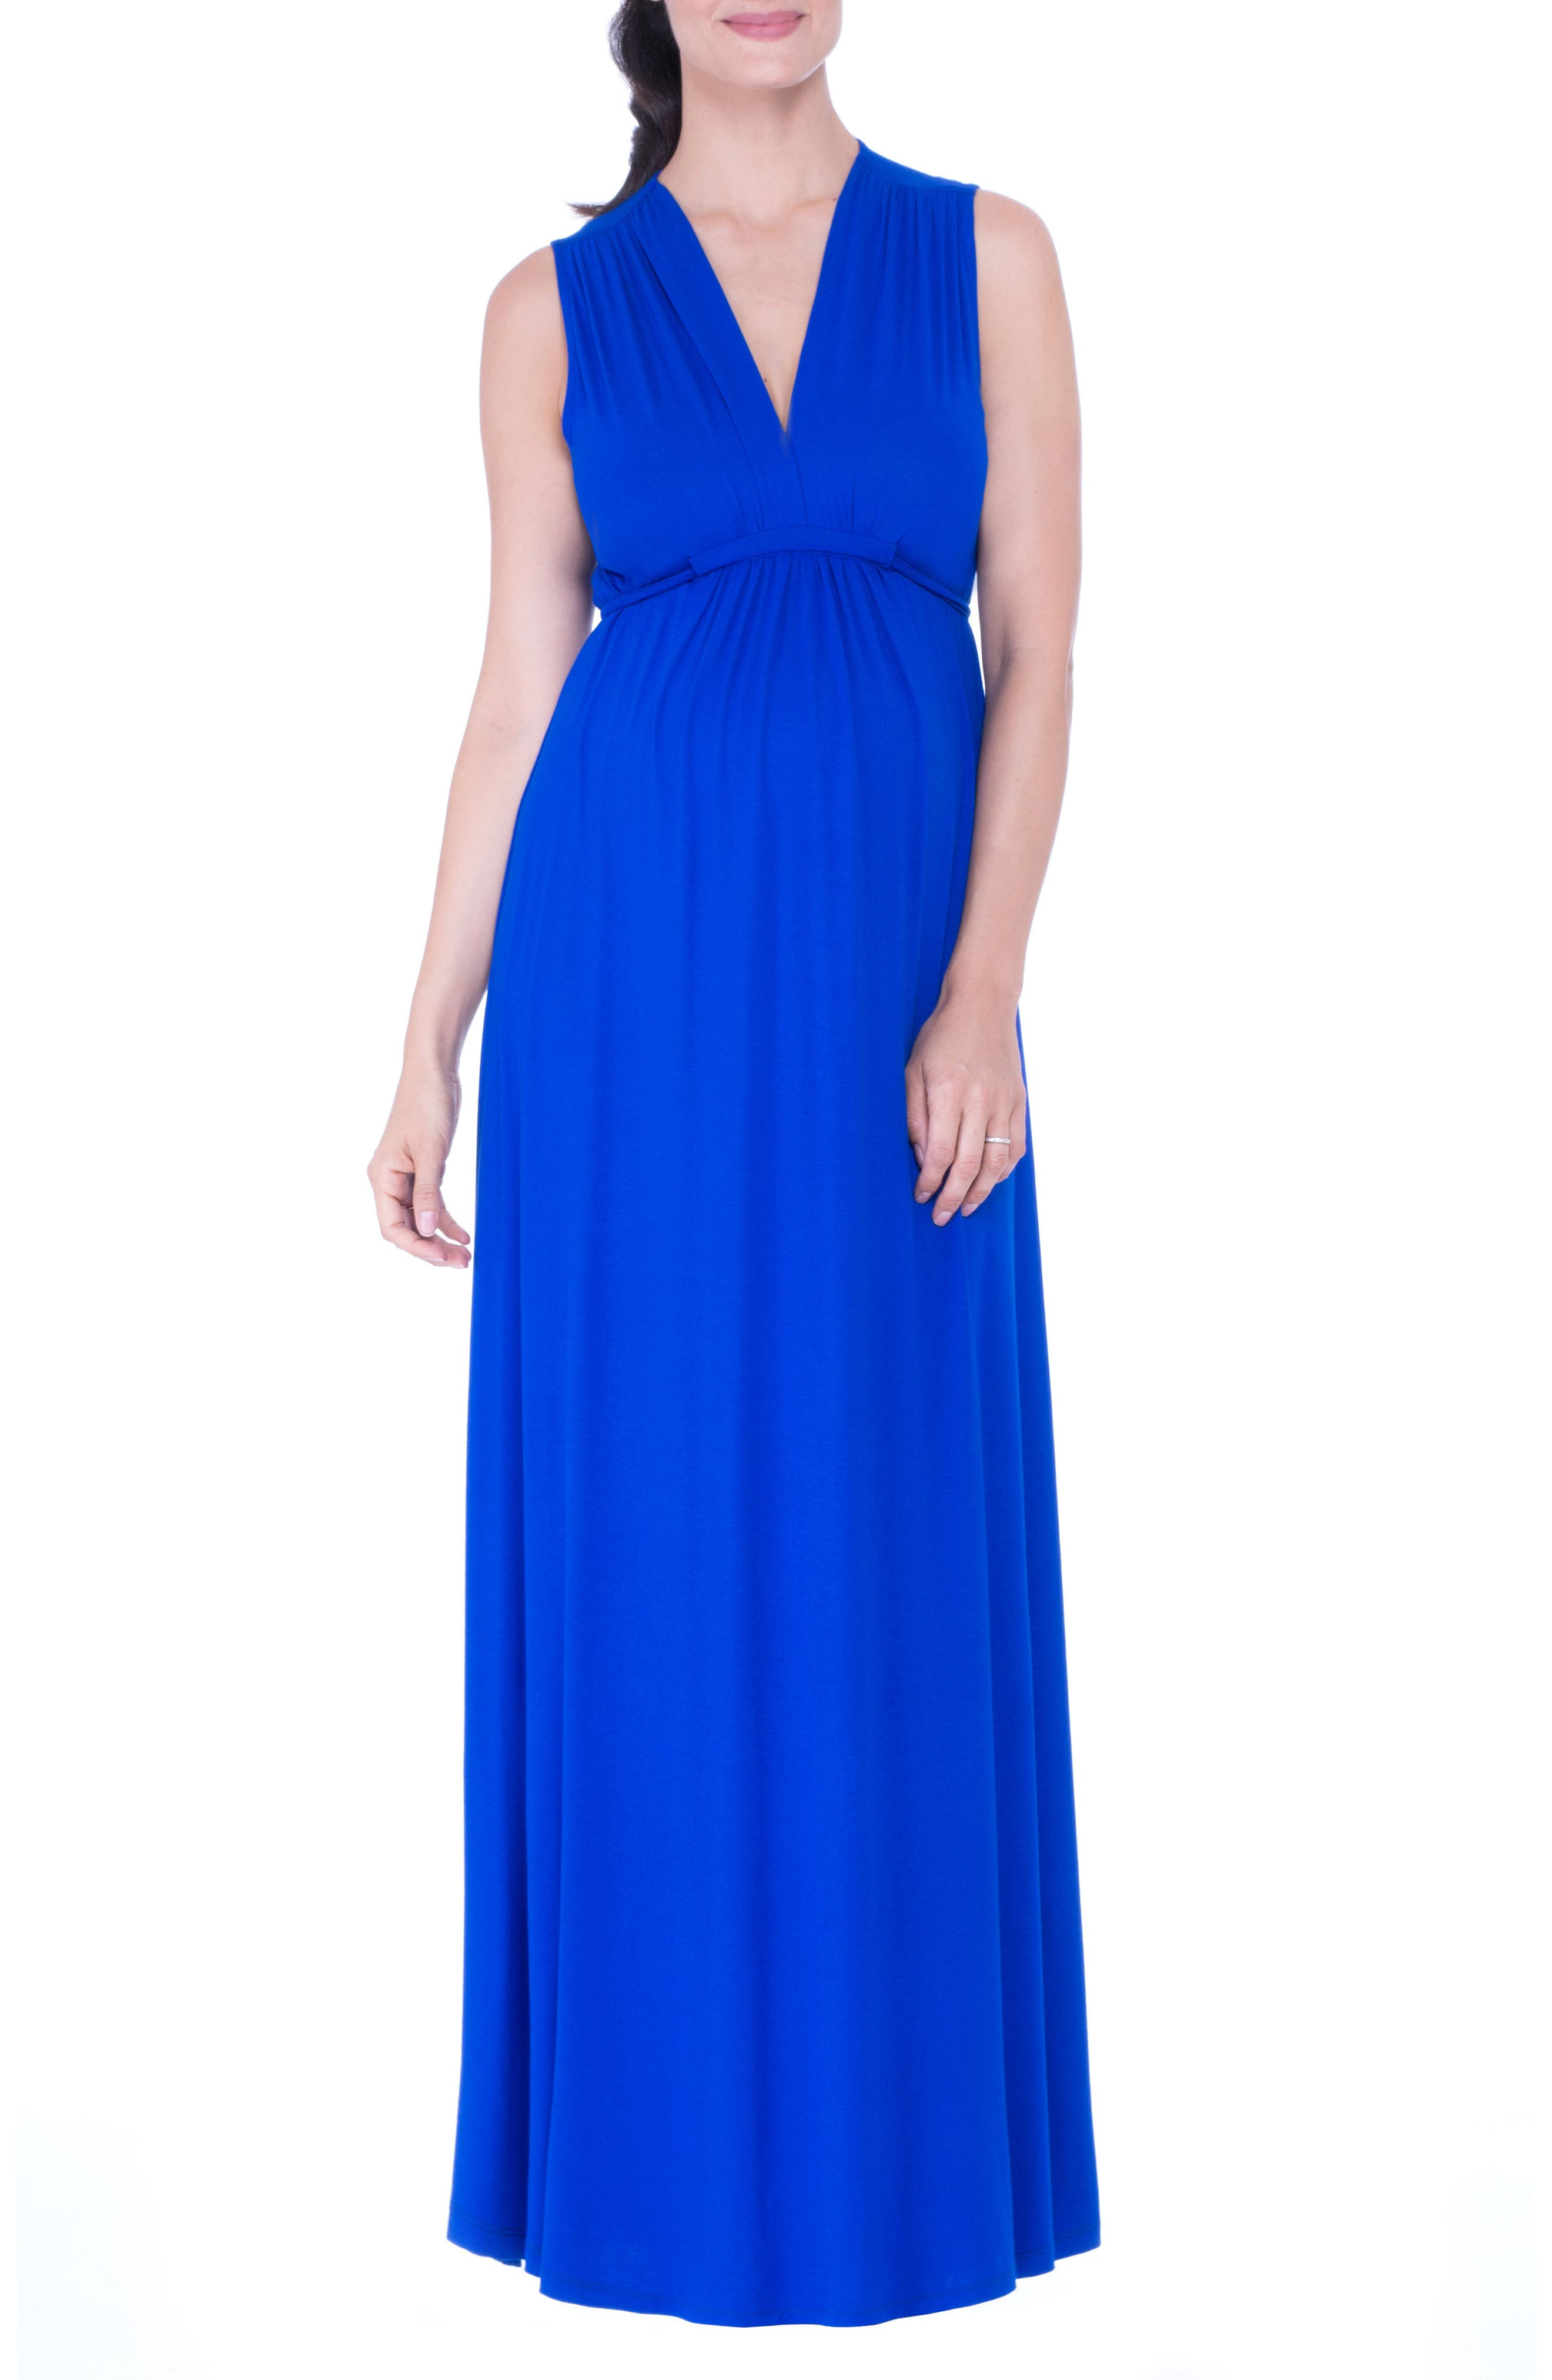 Lucy Maternity Maxi Dress,                         Main,                         color, BLUE